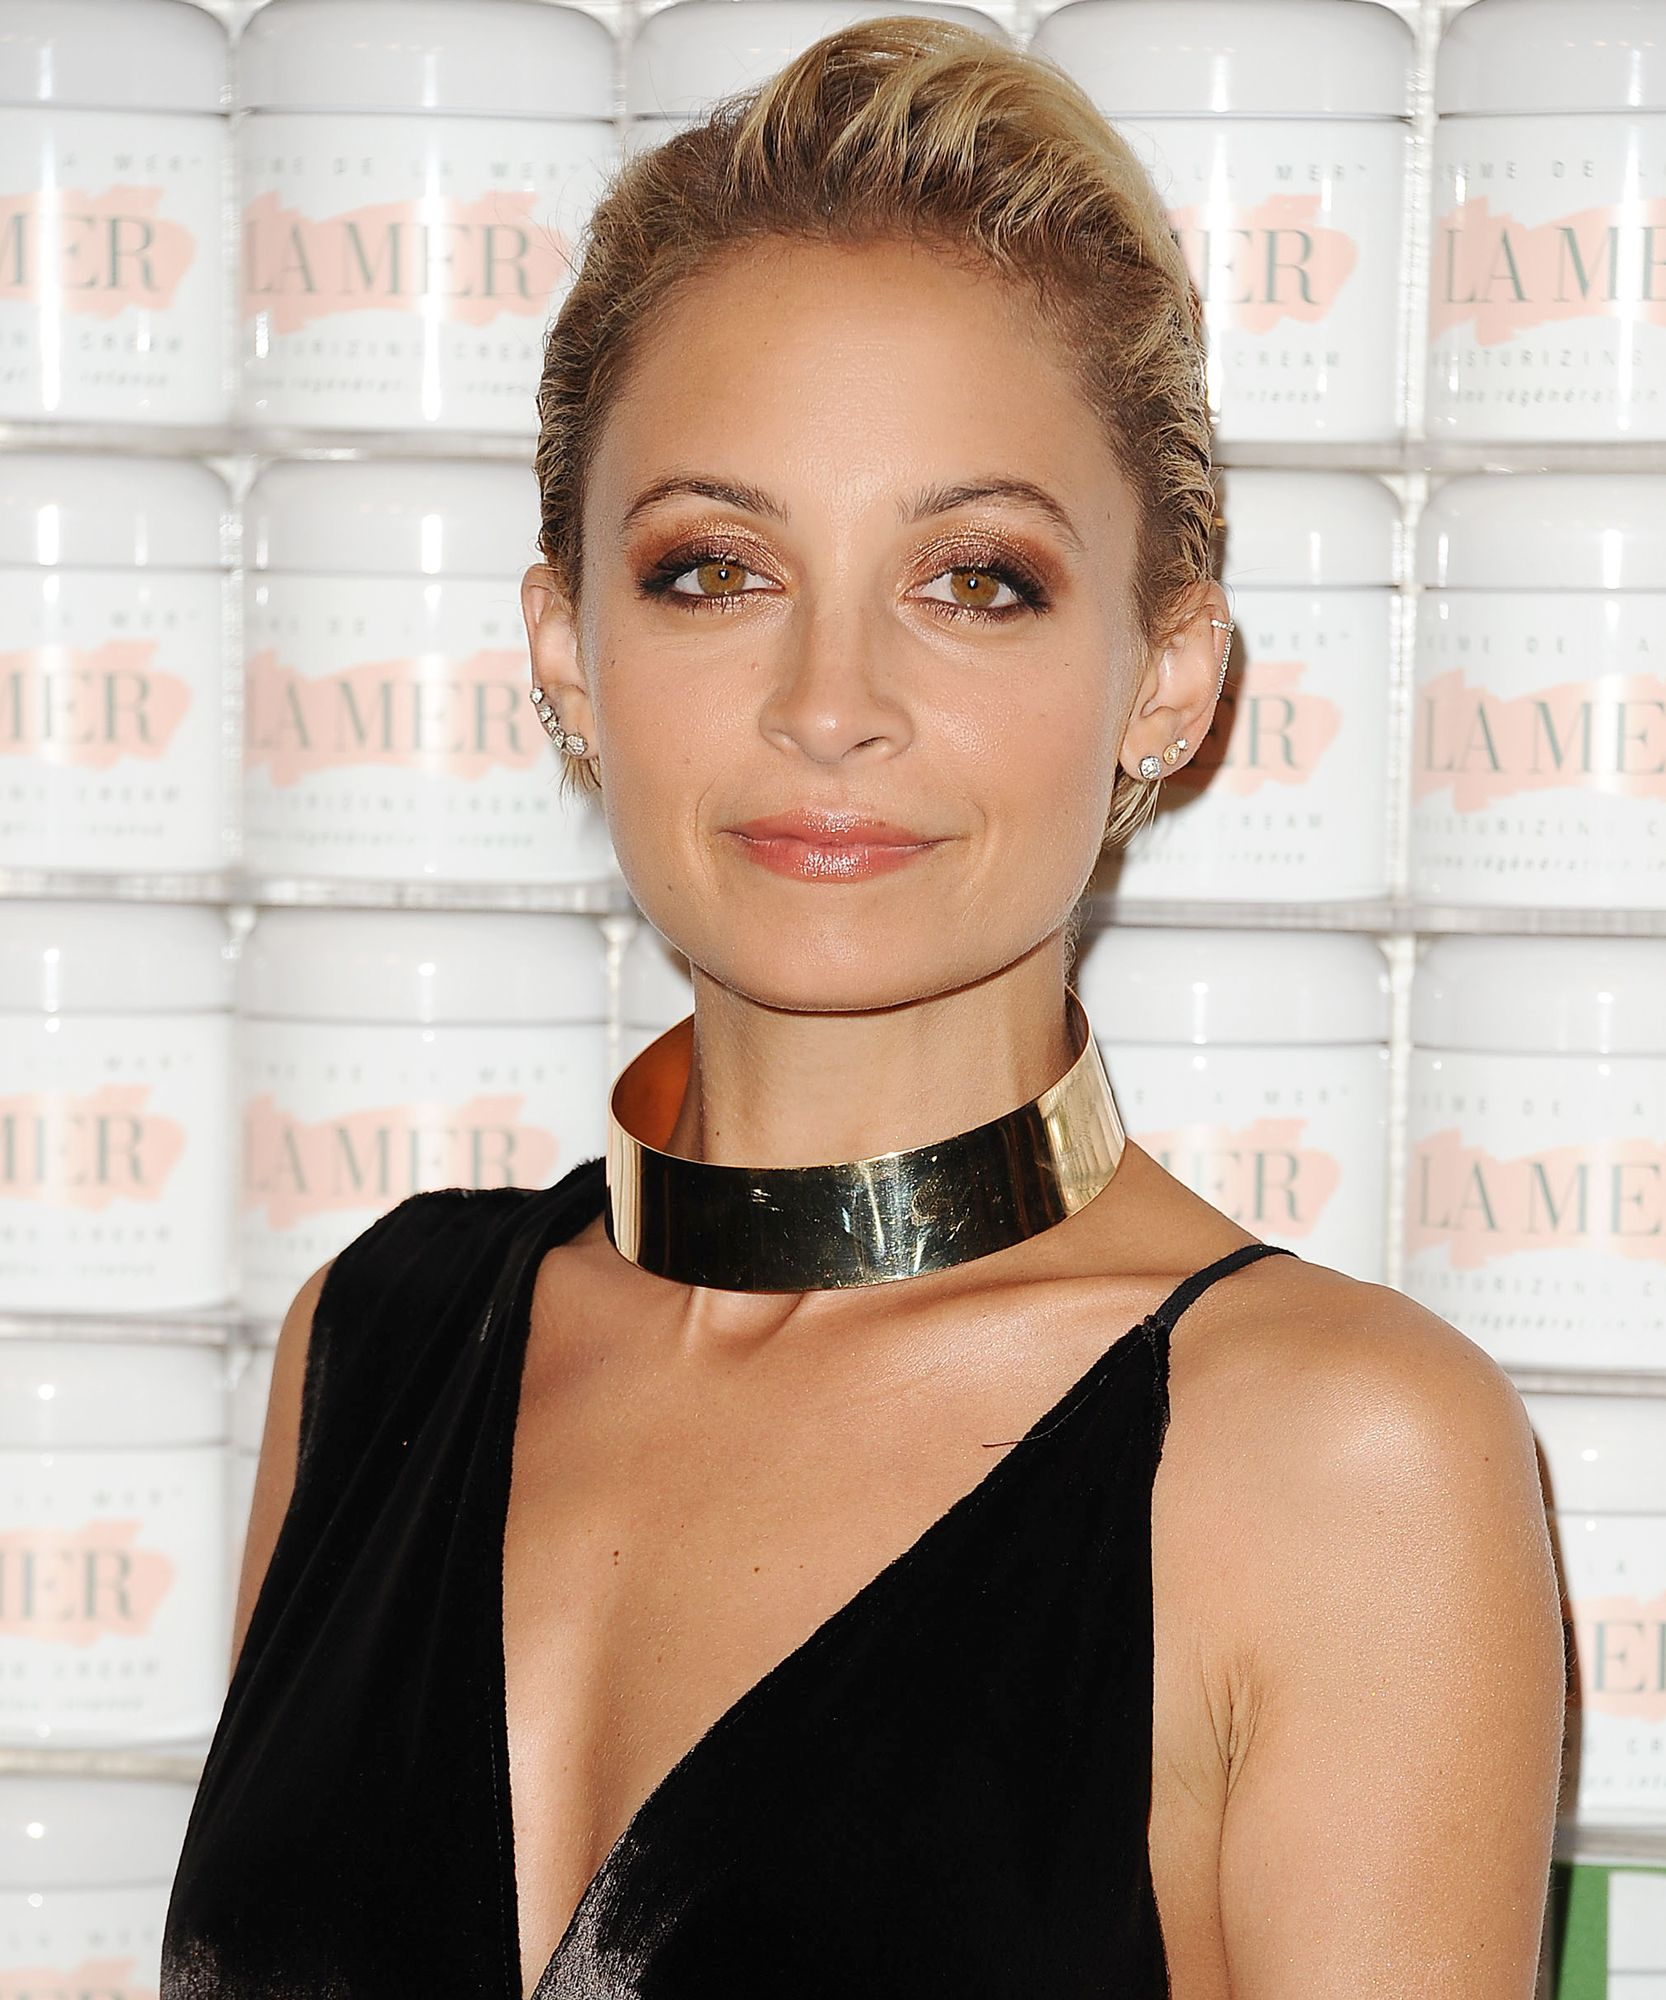 Selfie Nicole Richie naked (96 photos), Tits, Leaked, Feet, butt 2017